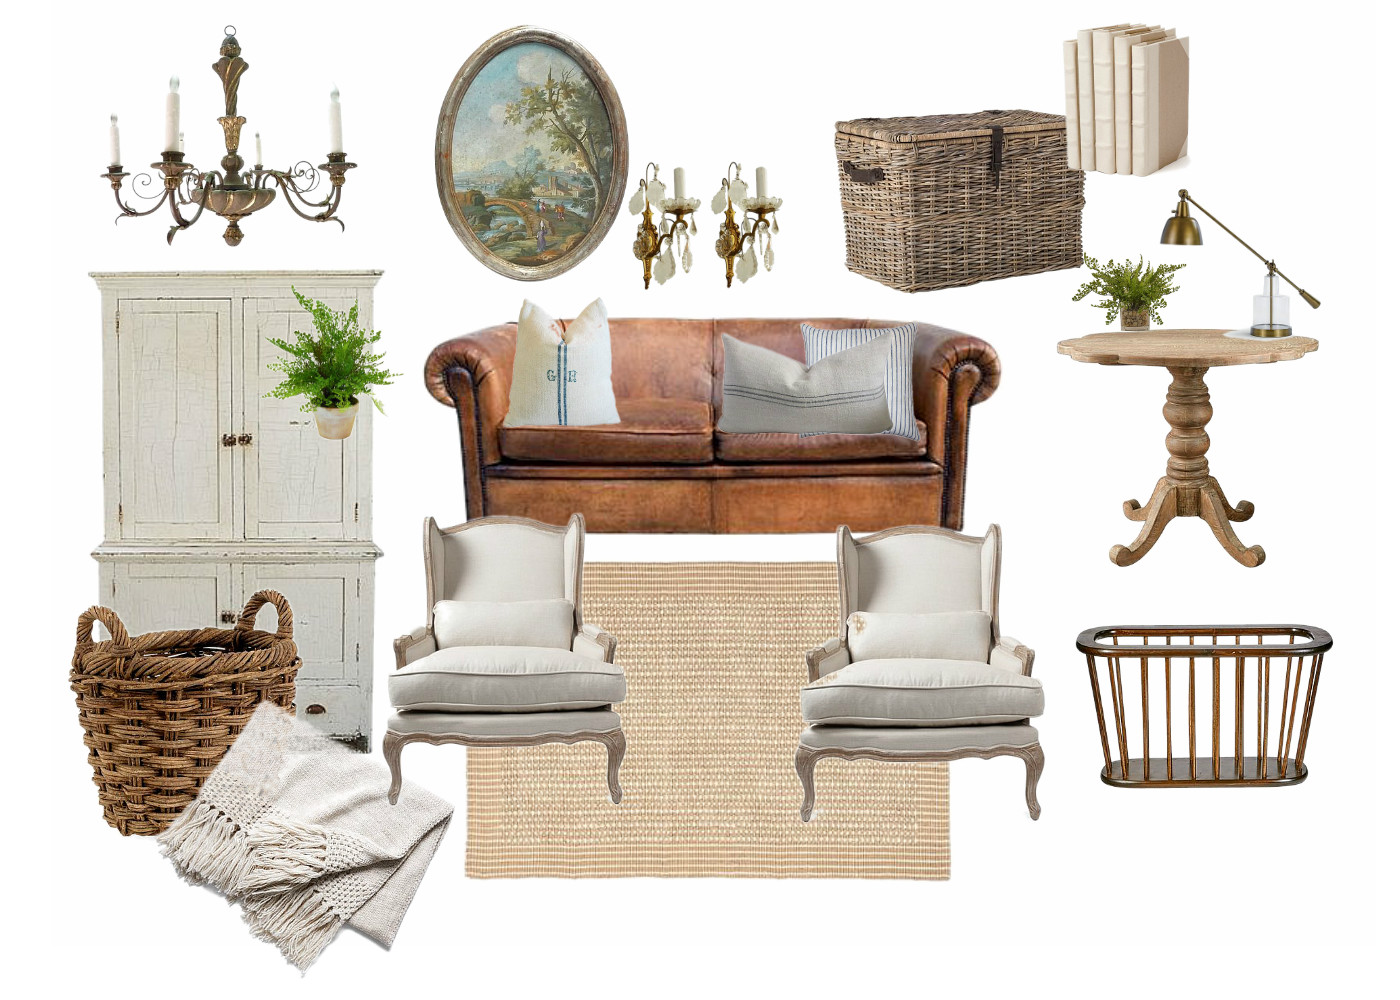 Farmhouse Living Room Reveal by sheholdsdearly.com